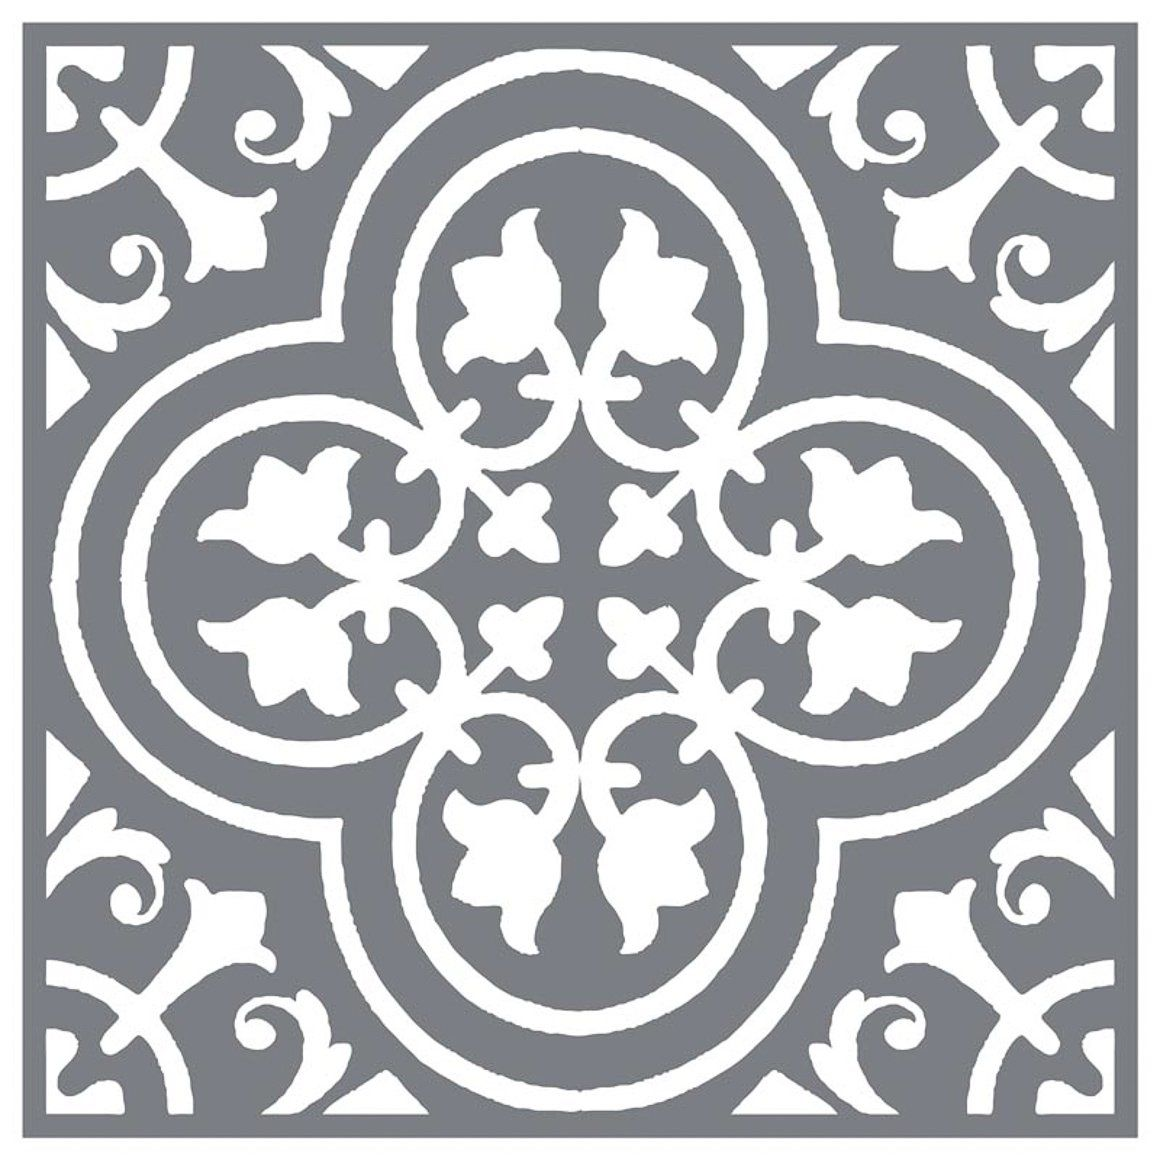 Mesh Stencil Floor Tile Traditional 12x12 Stenciled Floor Floor Stencils Patterns Stenciled Tile Floor